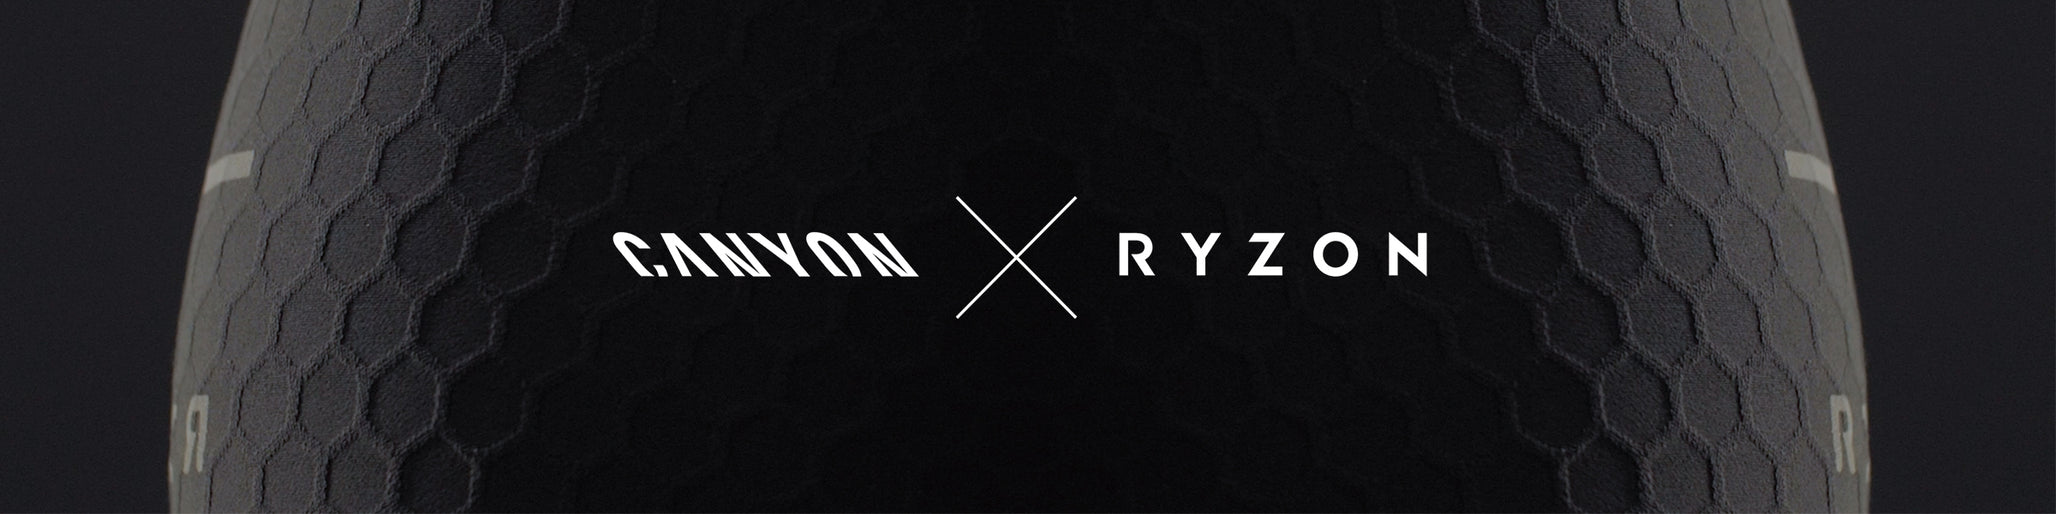 Ryzon Alliance redefined Header Image